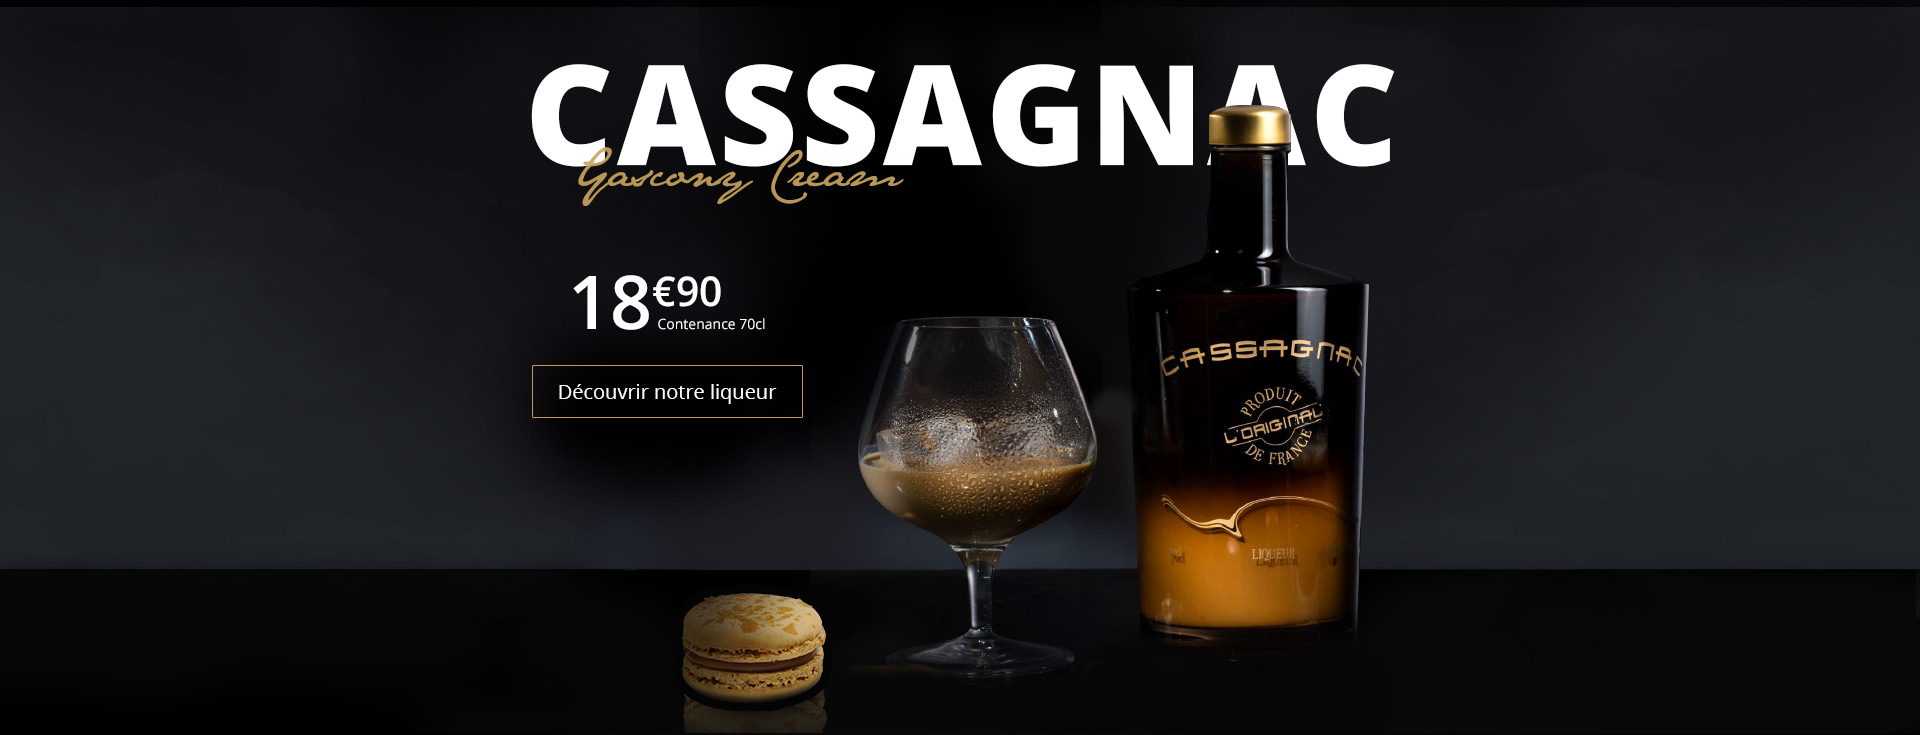 Cassagnac, Gascony Cream